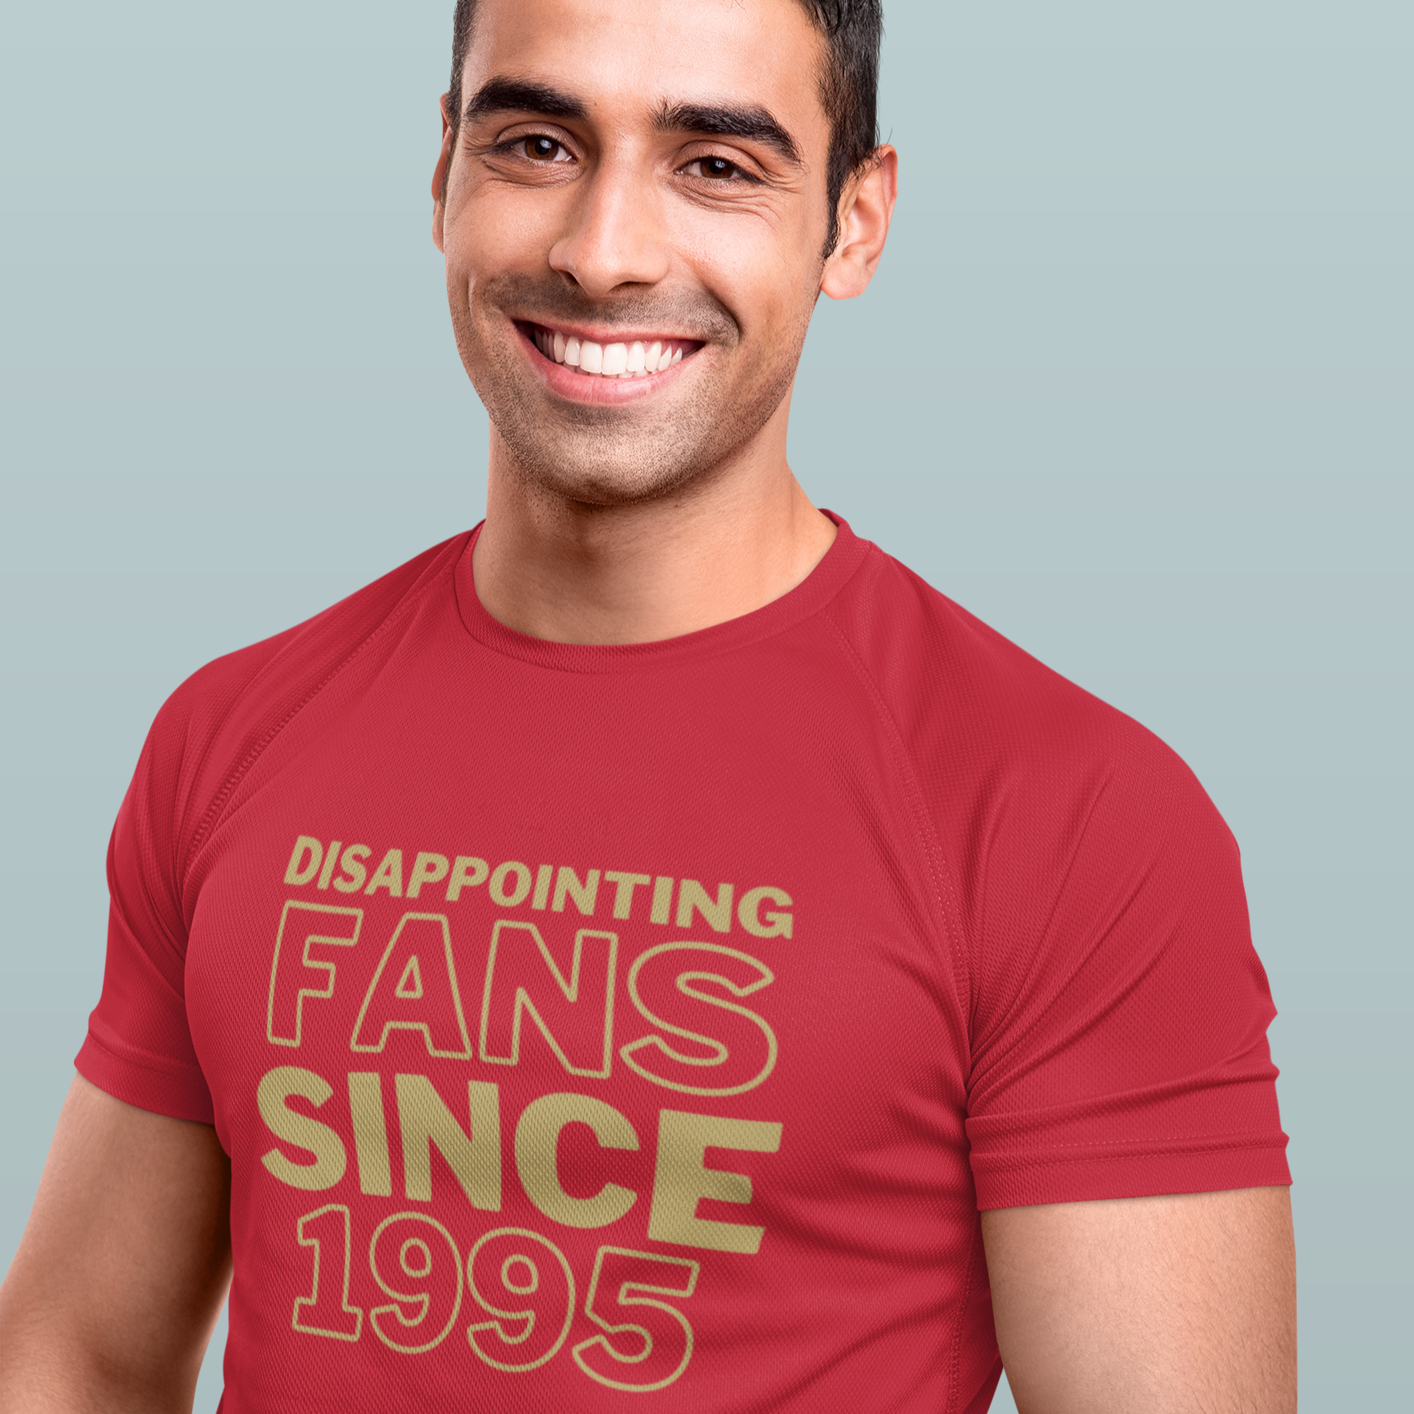 Smiling tall dark and handsome man with a red t-shirt